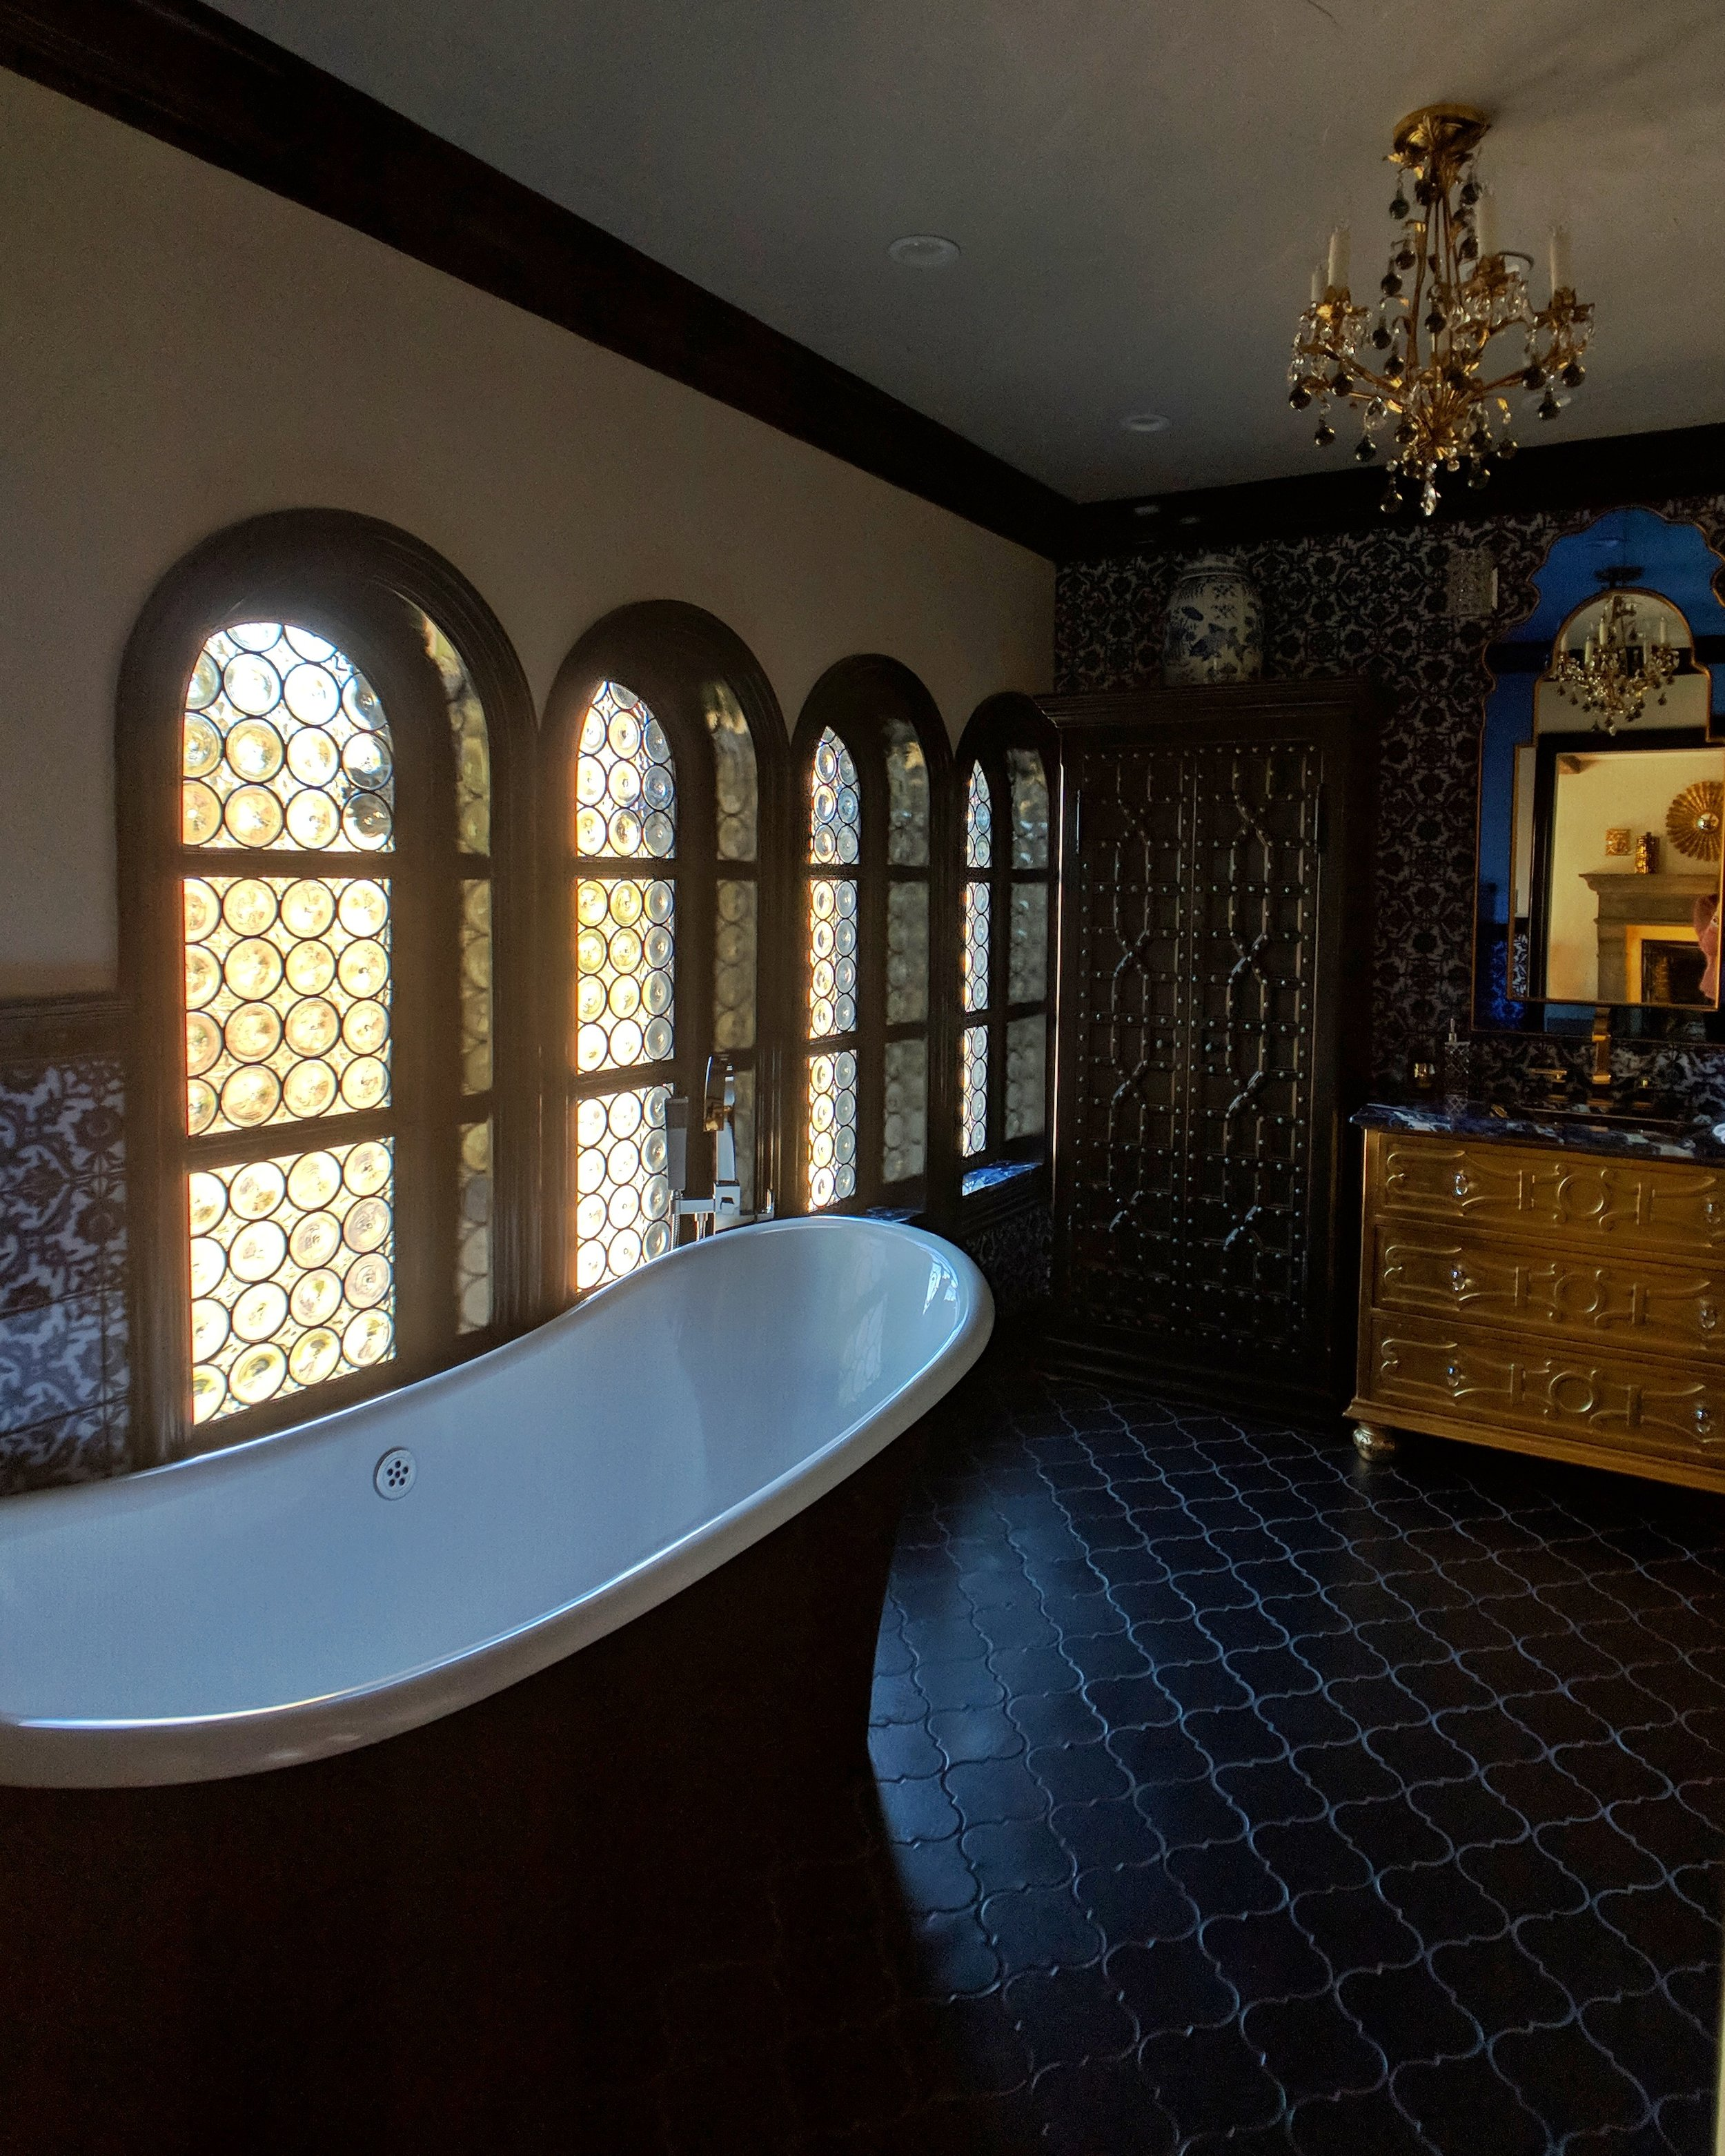 stained glass leaded glass design legacy glass studios menlo park bay area california custom design rondels spanish influence interior design tile privacy glass black bathroom arched windows tub.jpeg